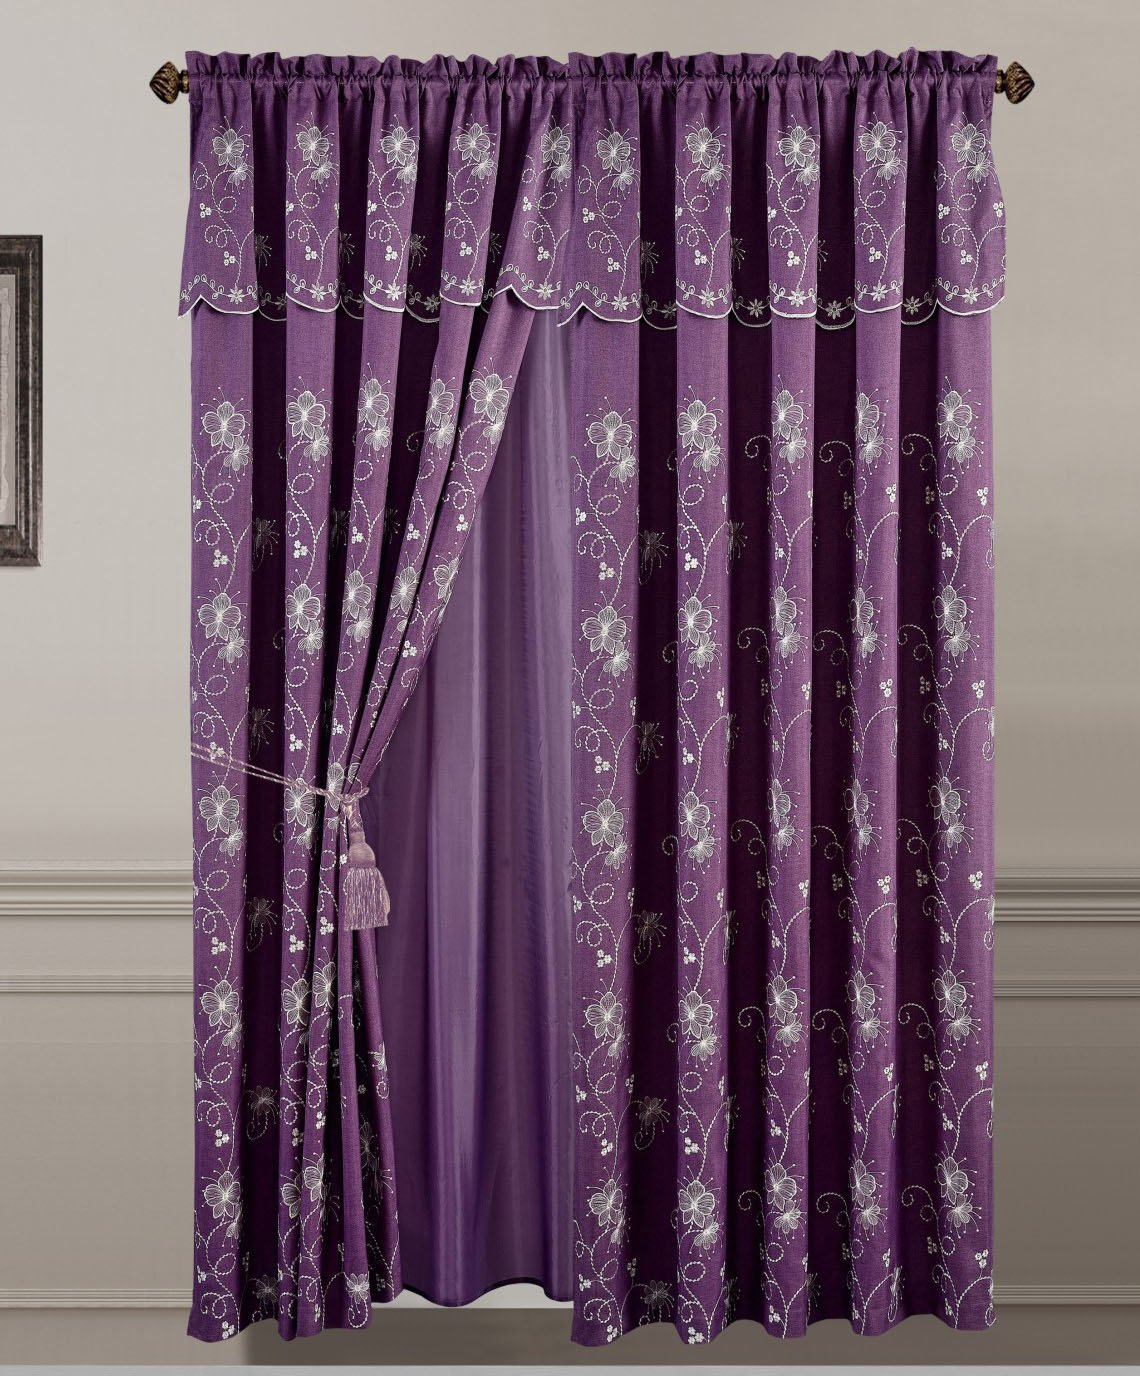 idea tiebacks design and elegant shower curtains bathroom with valance a decorations for